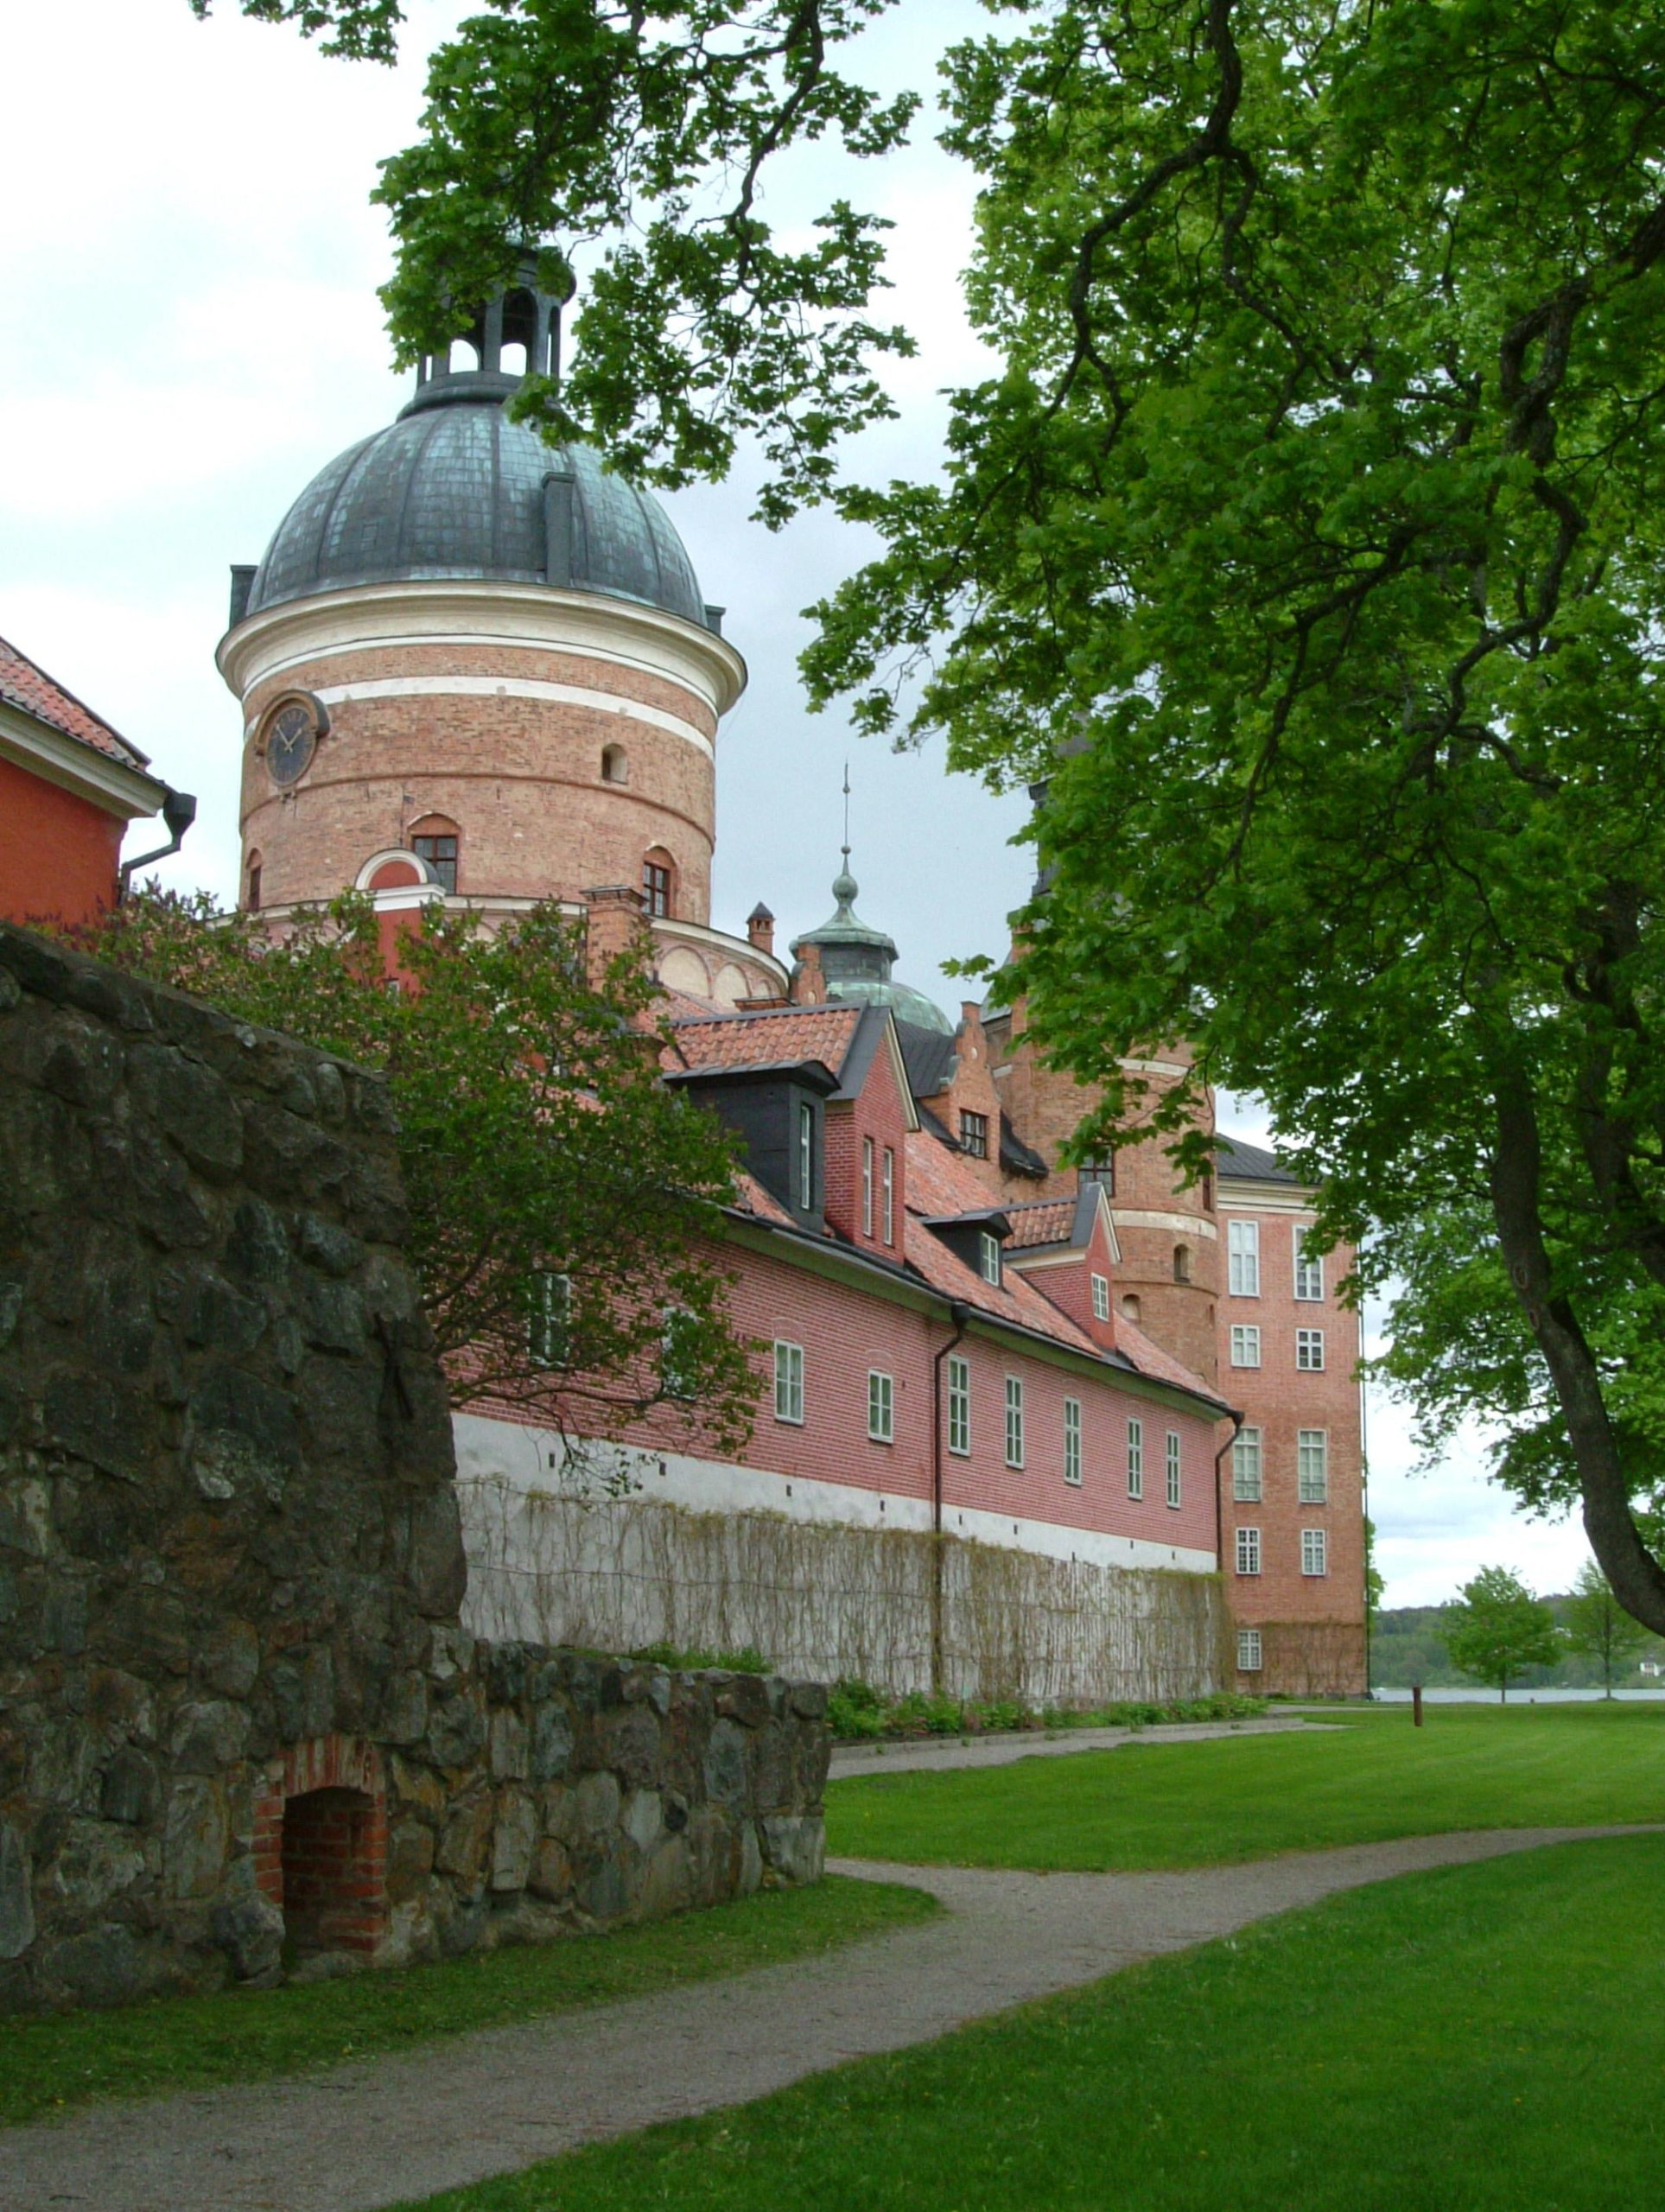 Gripsholm castle from the side